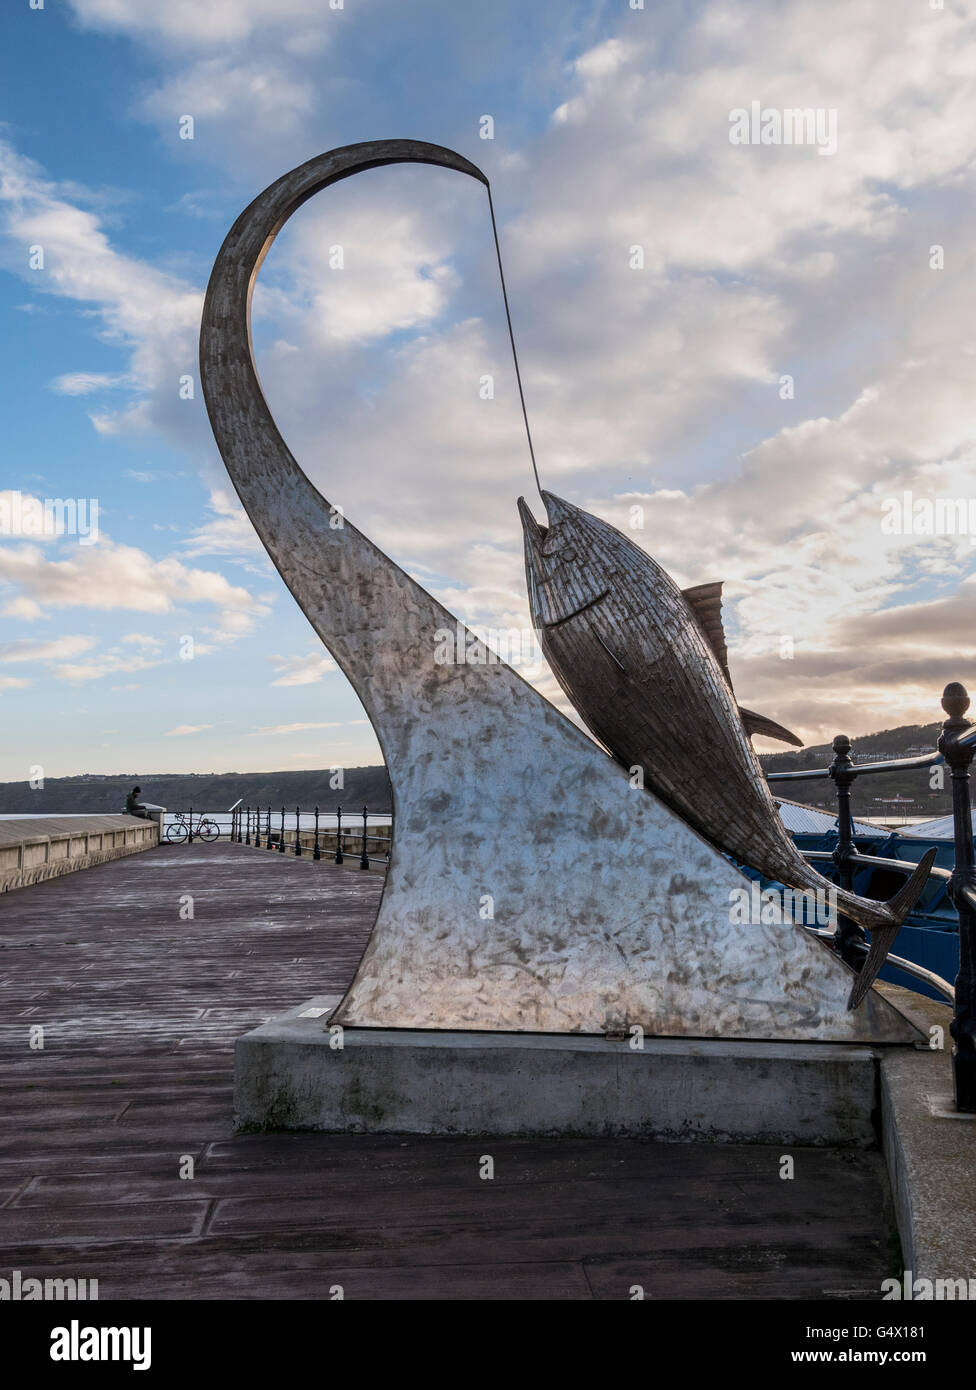 Tunny Sculpture by Ray Lonsdale on Outer Harbour Wall Scarborough Yorkshire UK. Donated by Maureen and Michael Robinson - Stock Image